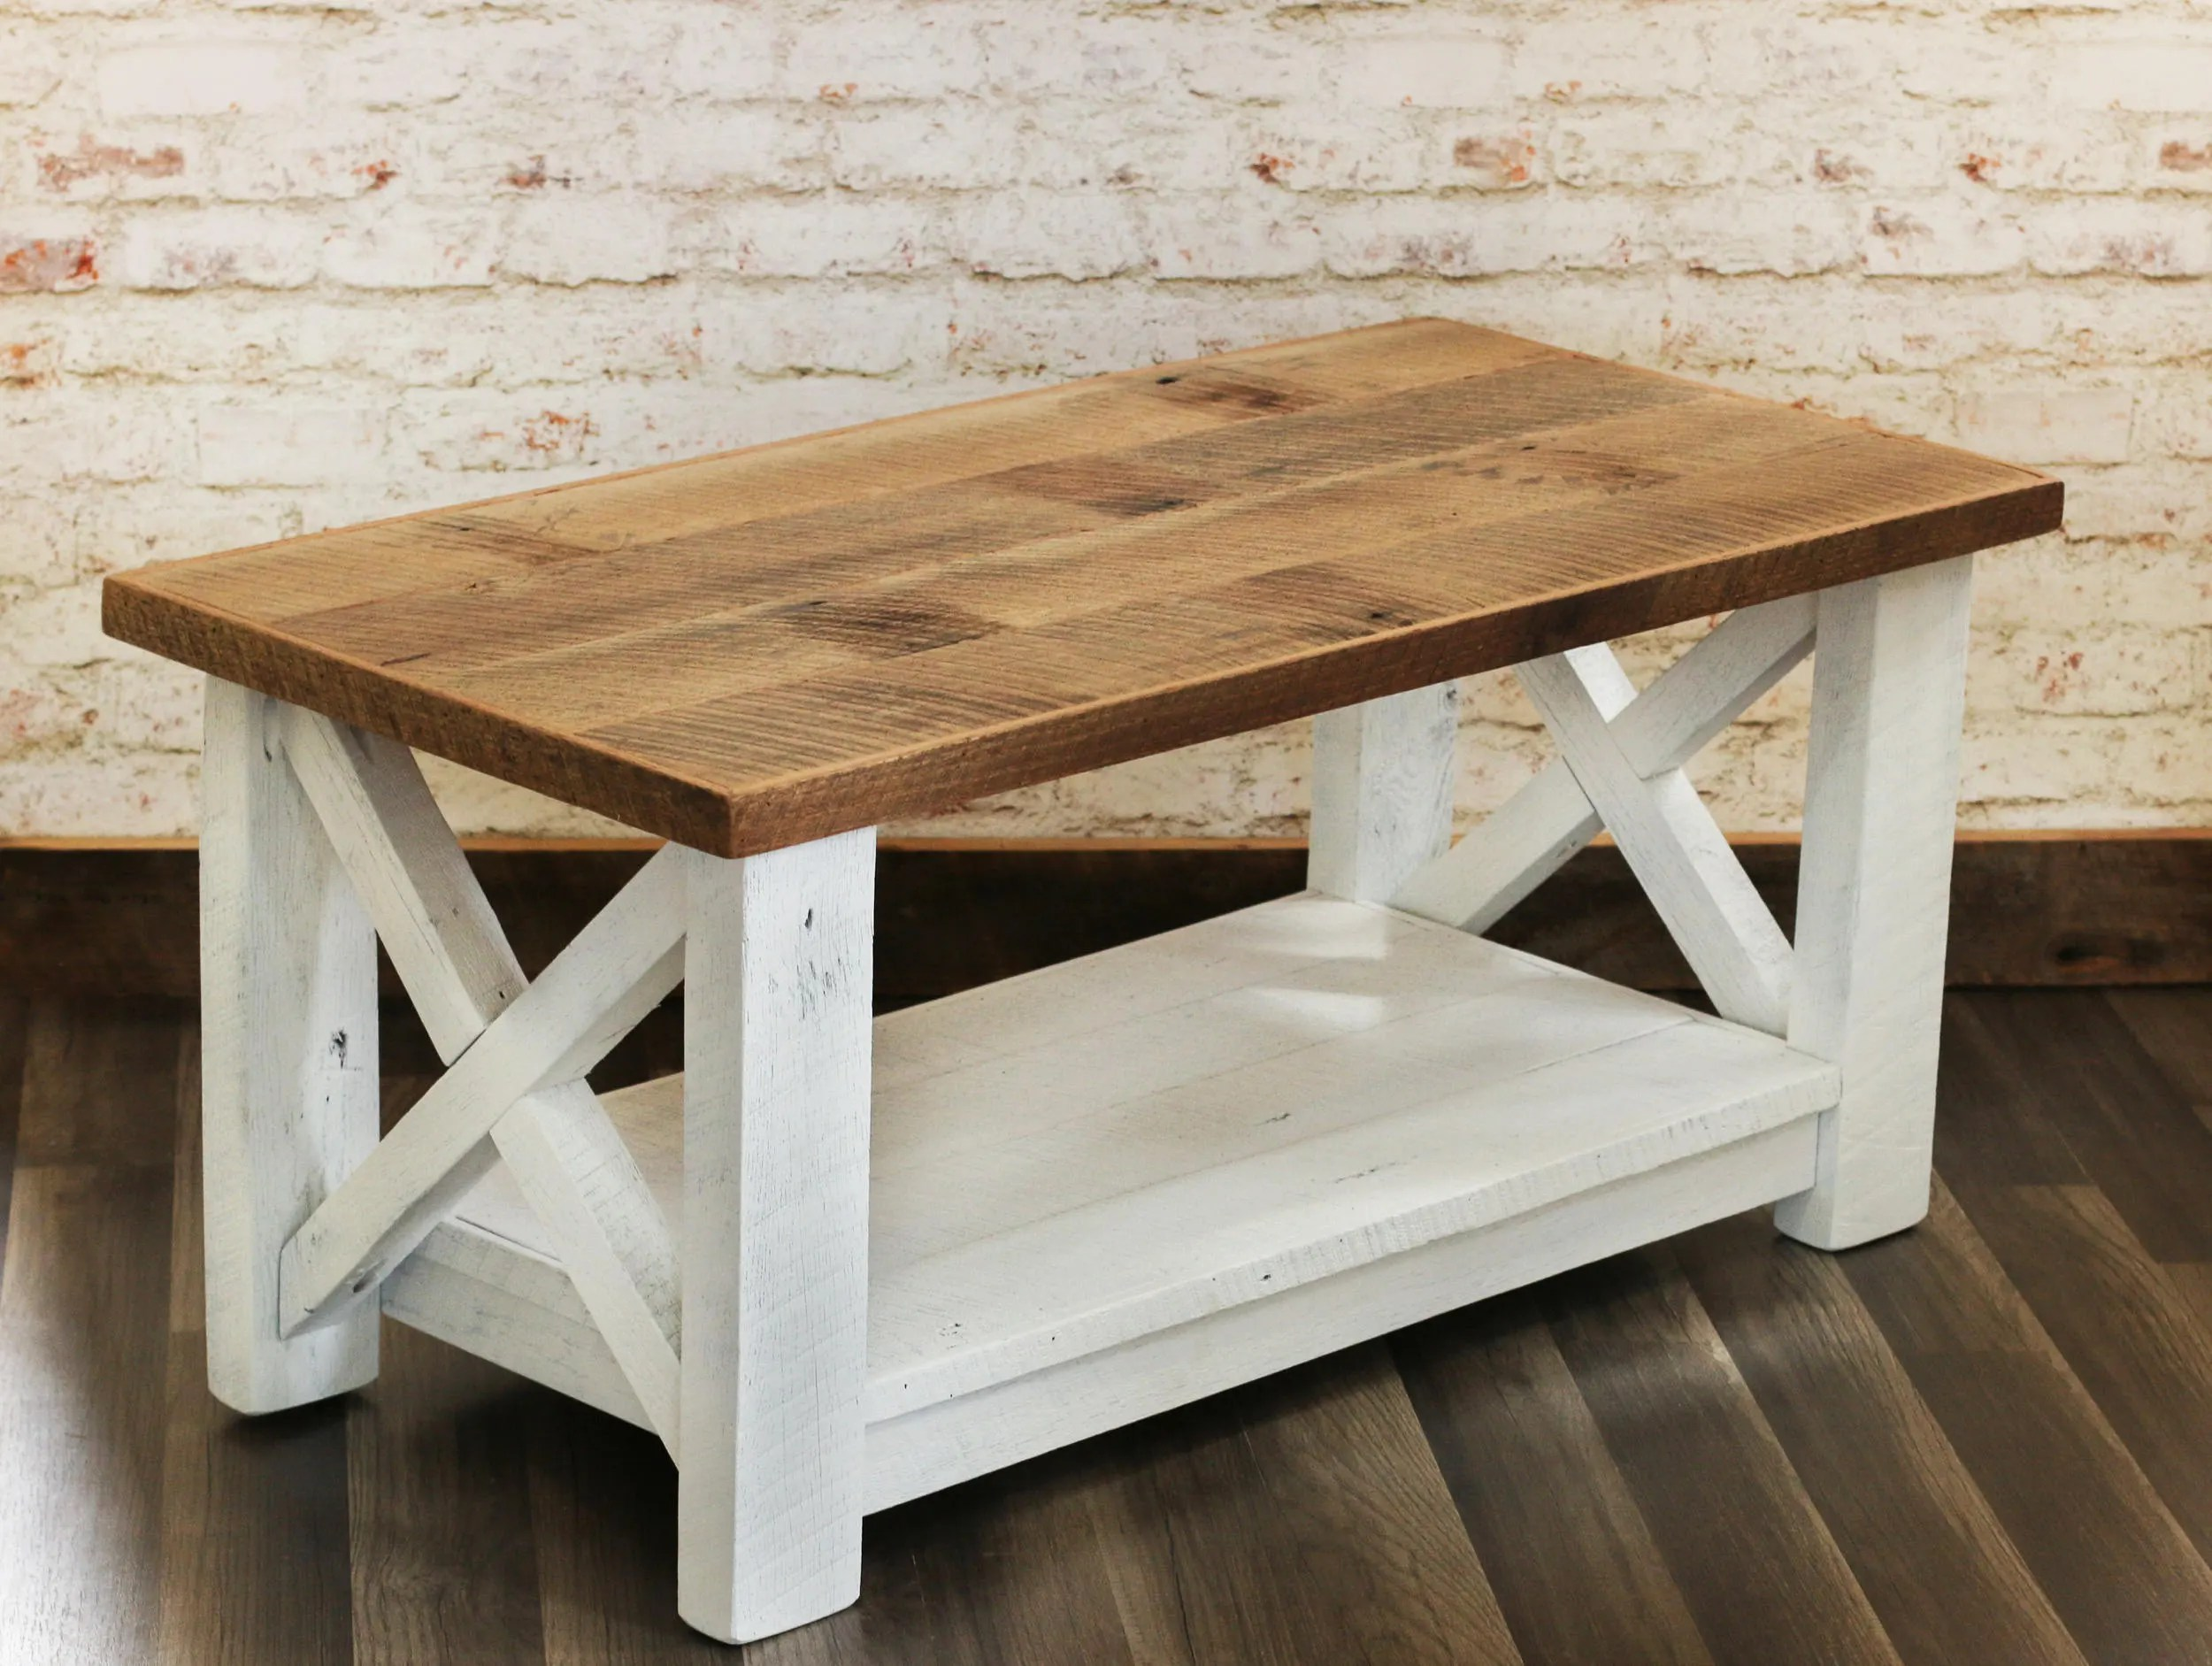 Farmhouse Coffee Table Etsy Farmhouse Coffee Table Made From Reclaimed Wood X Detail